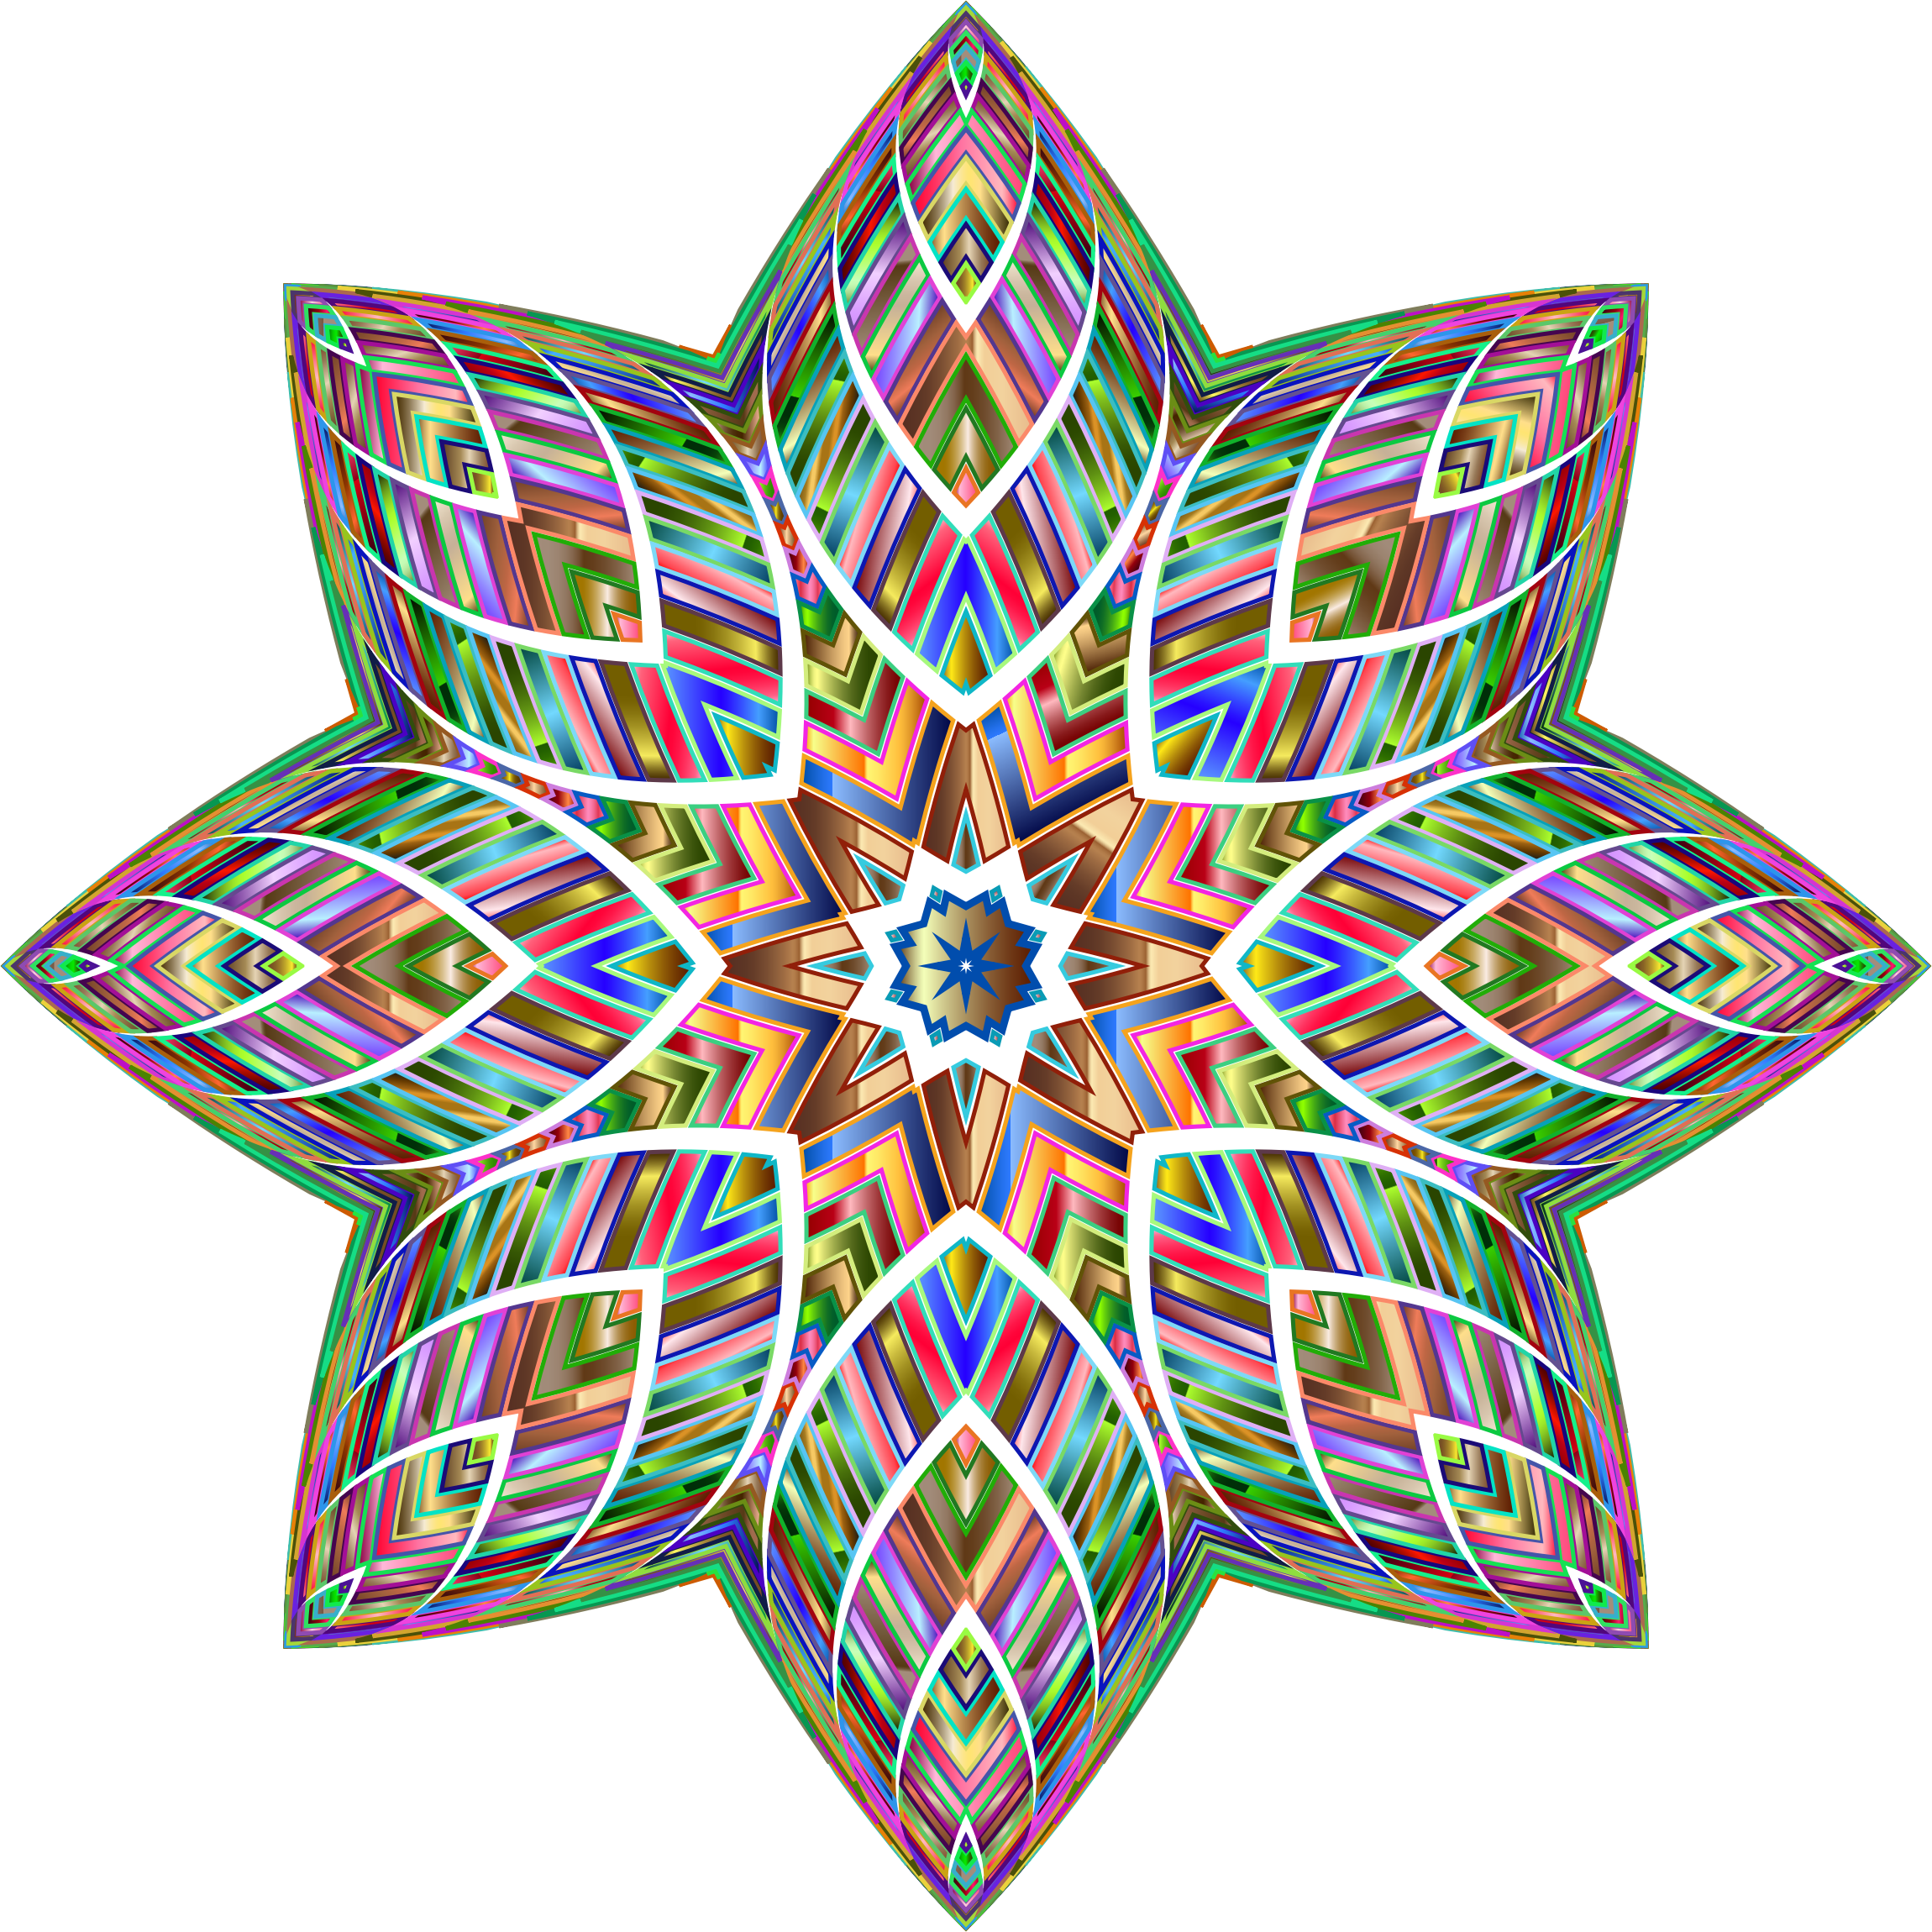 Chromatic Octagonal Ornament by GDJ